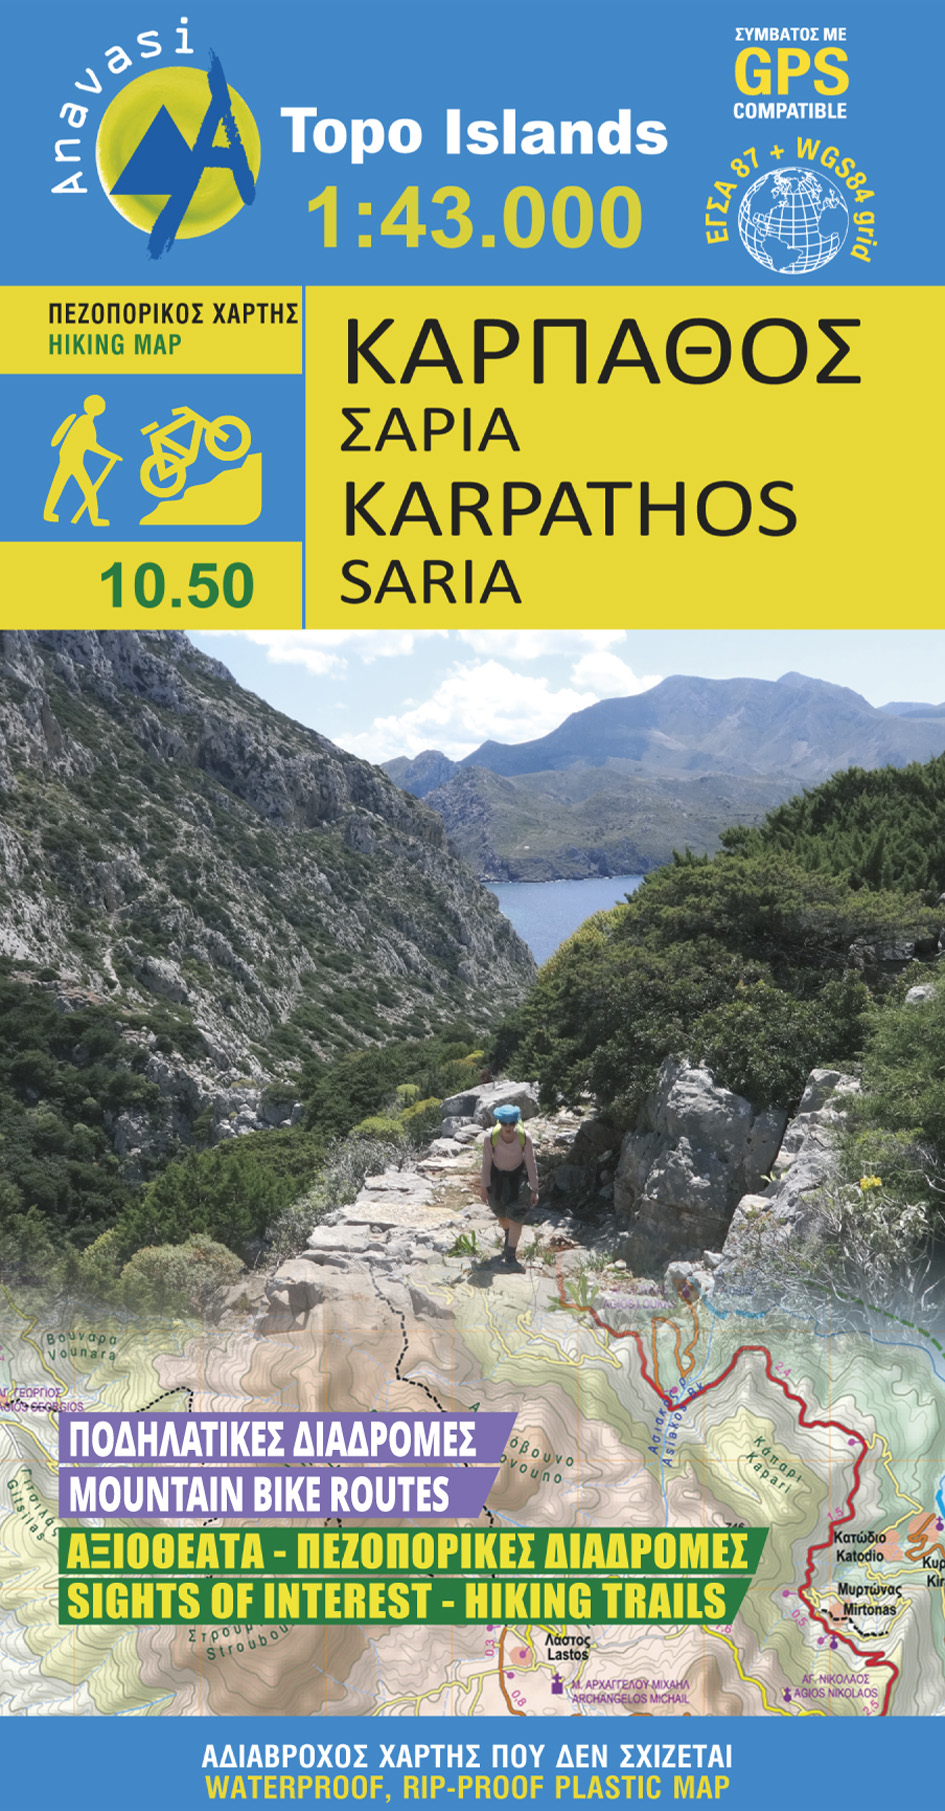 Karpathos - Saria • Hiking map 1:43 000